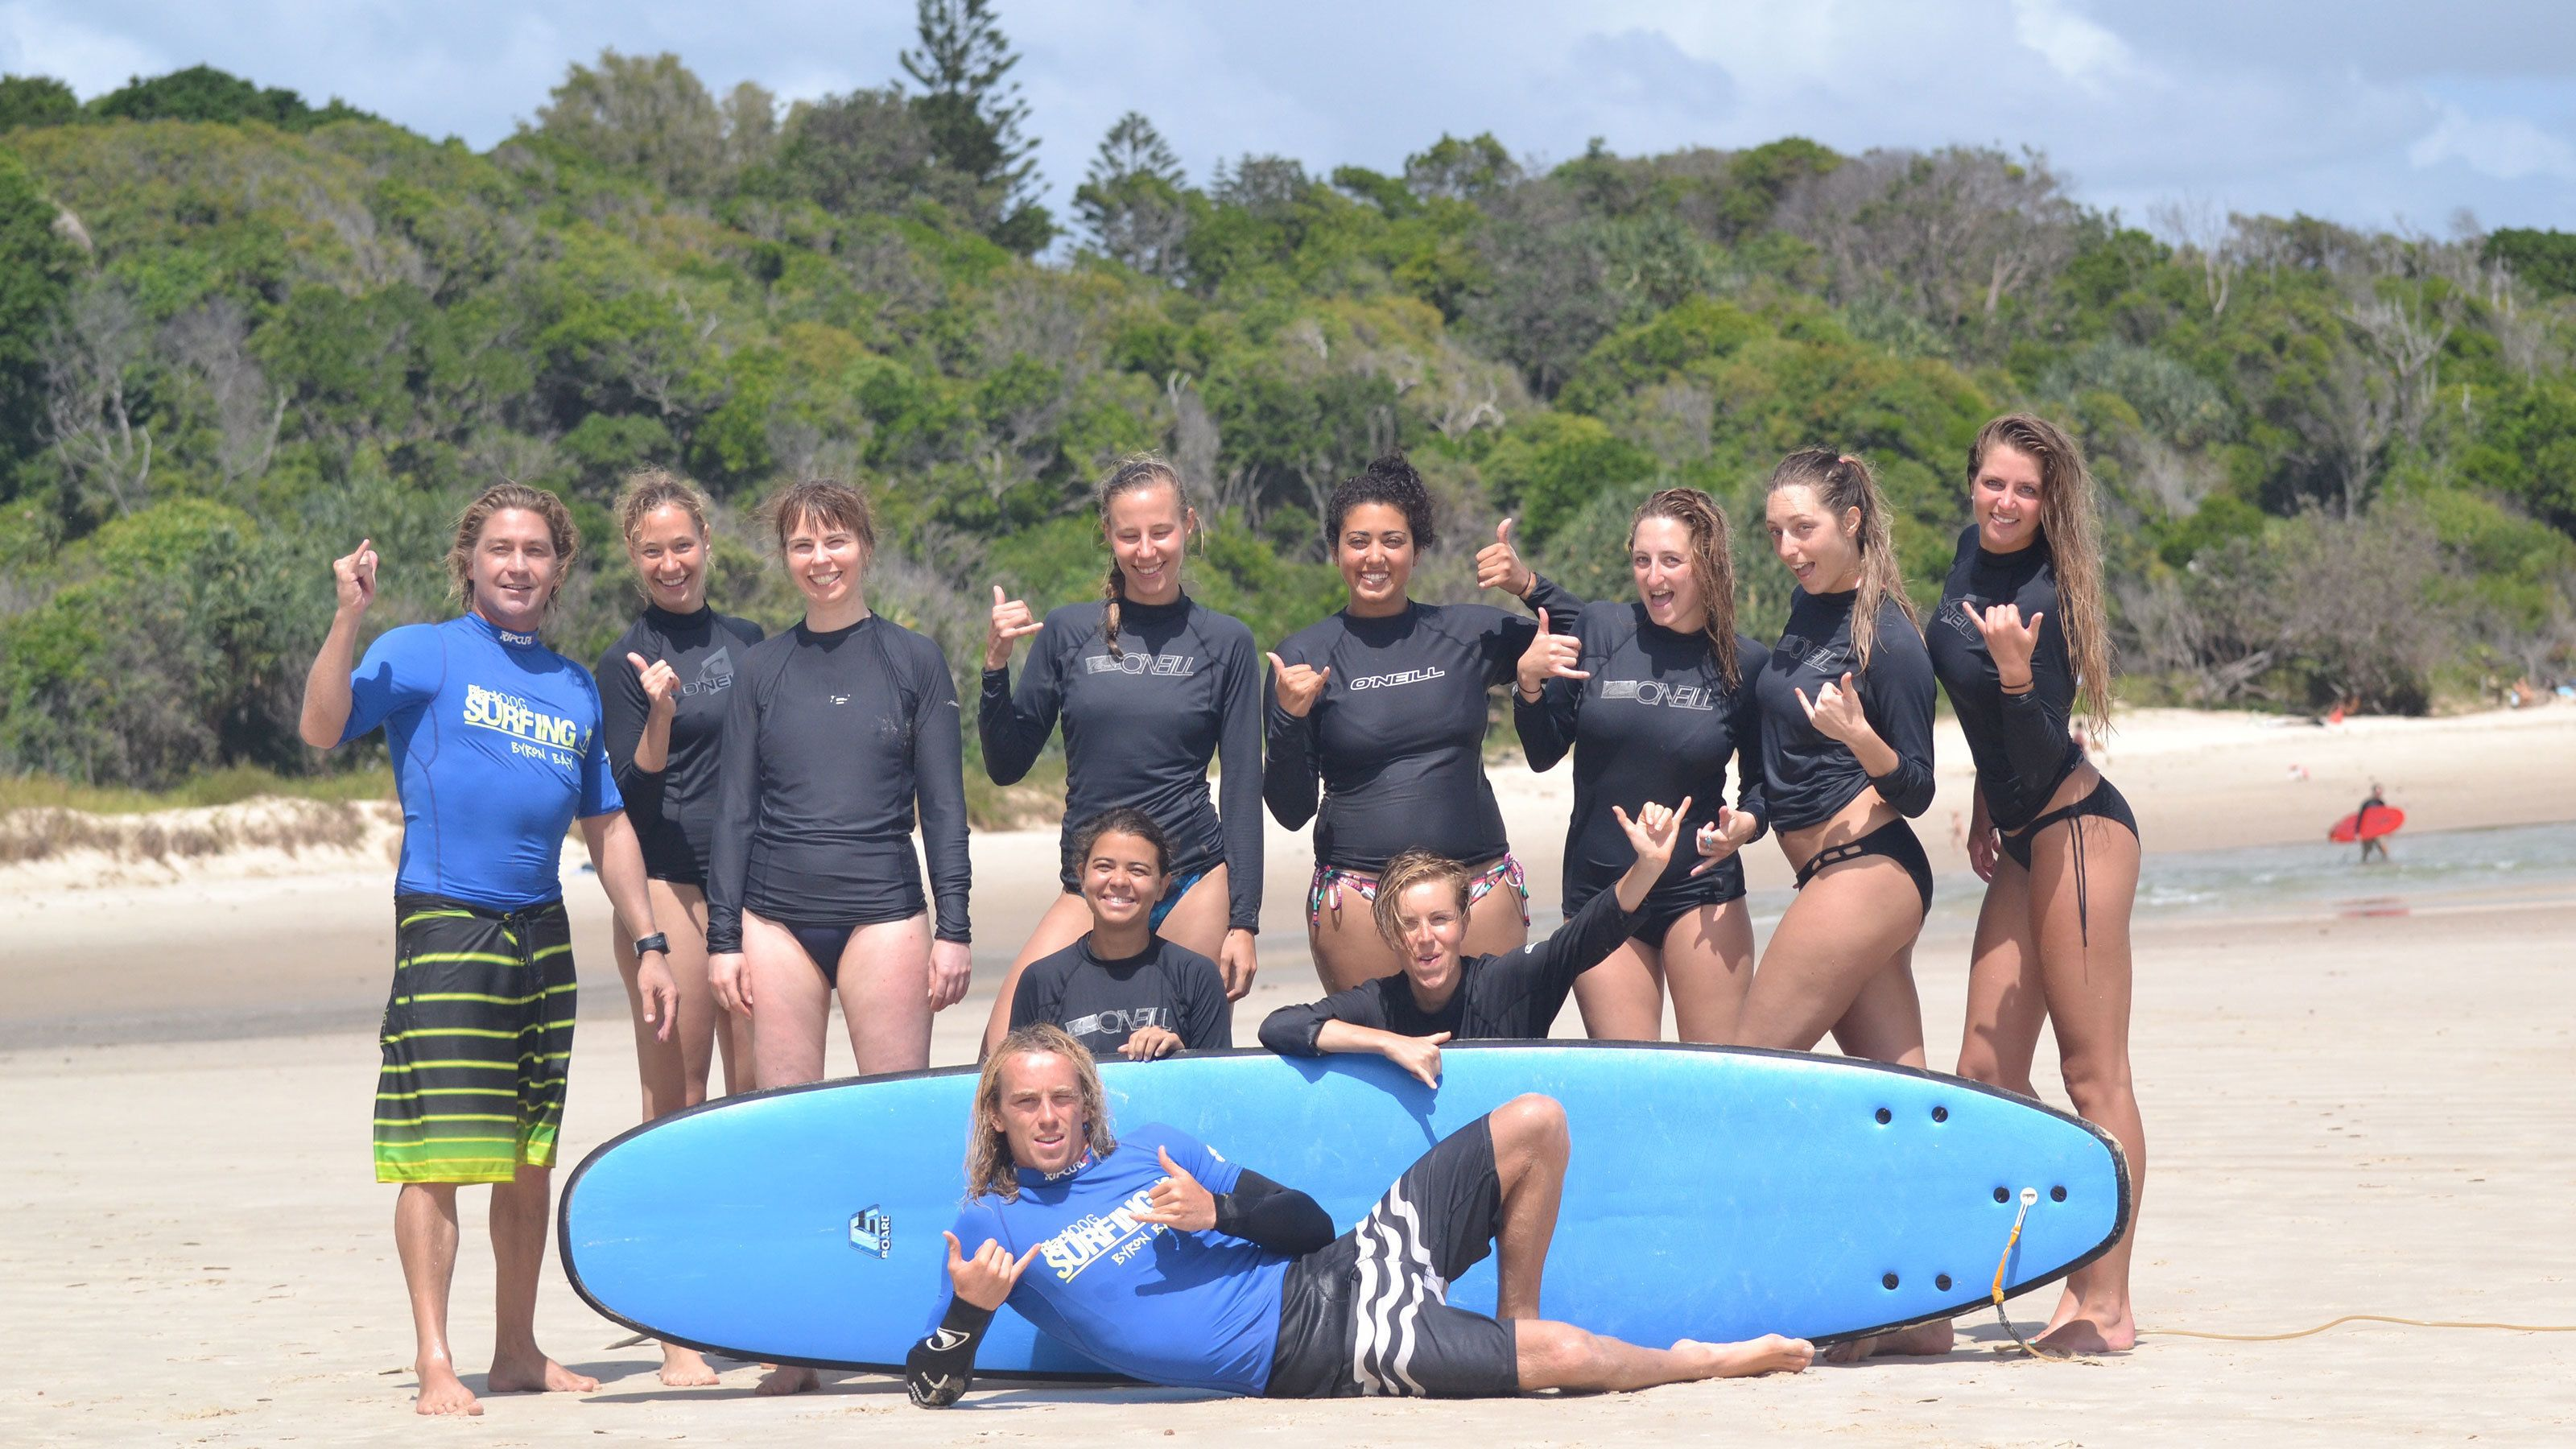 group of surfers posing at the beach in Australia